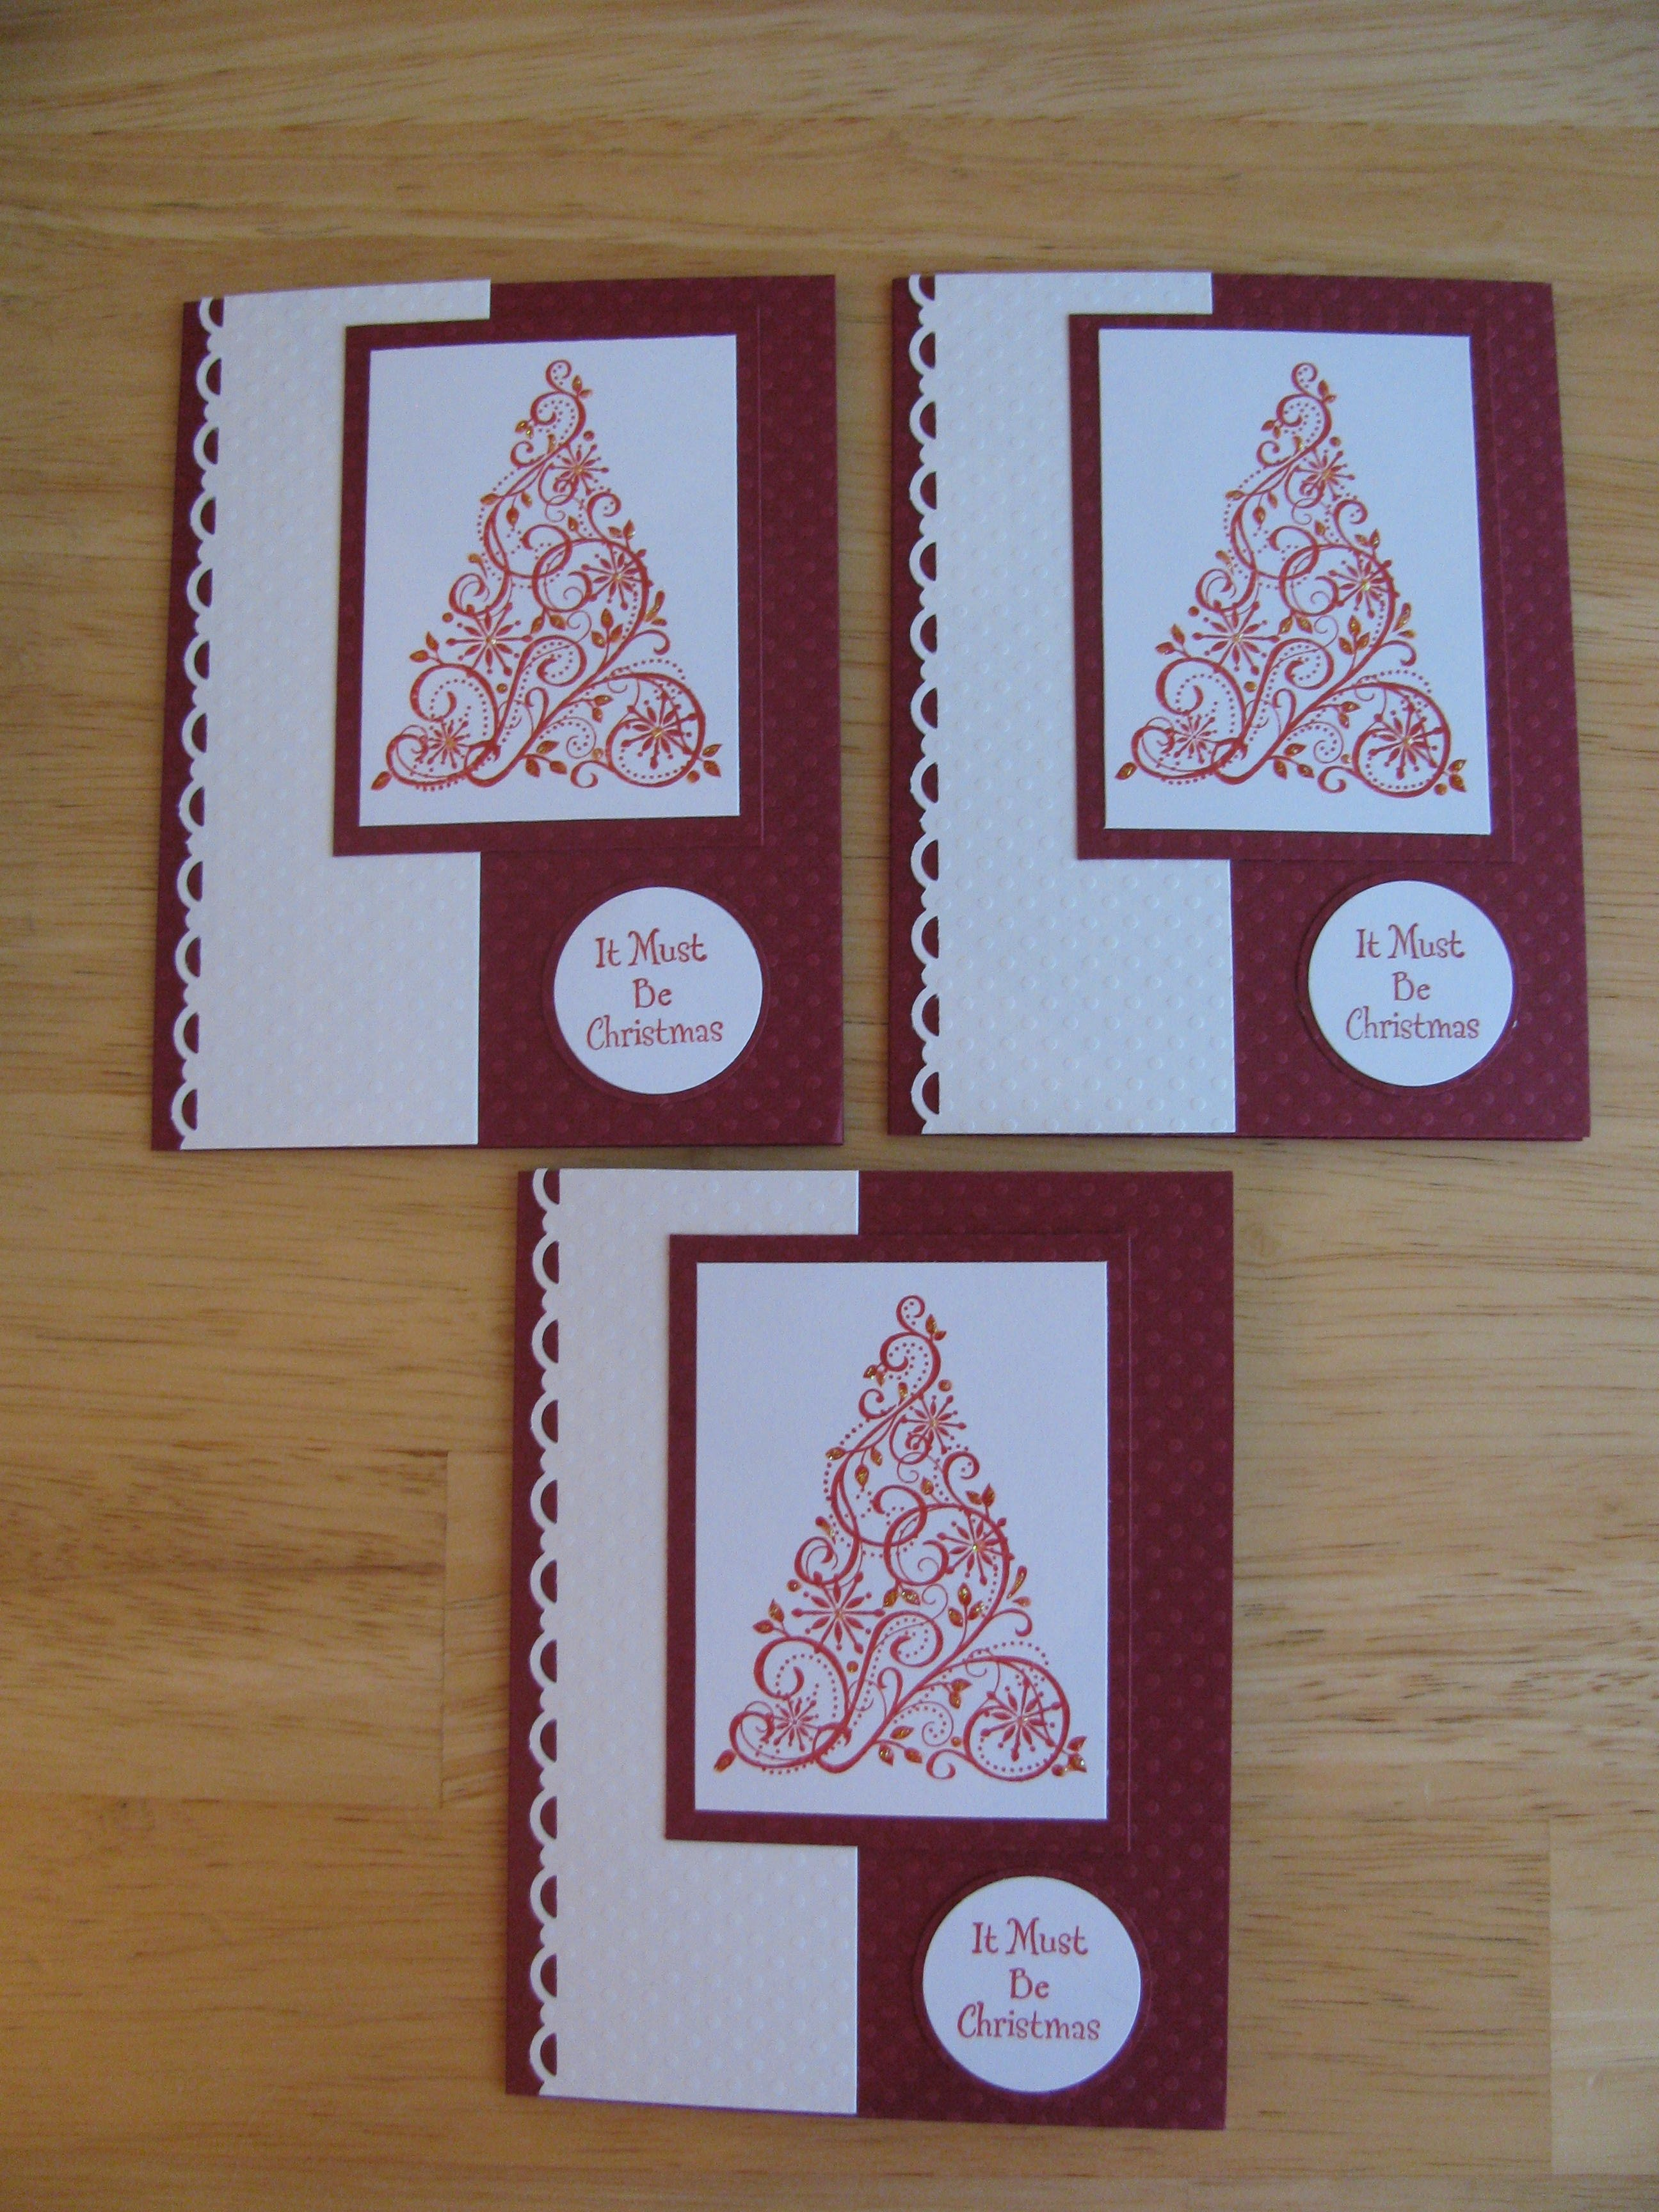 10 Beautiful Stampin Up Christmas Card Ideas stampin up christmas cards karens cards ideas 1 2020